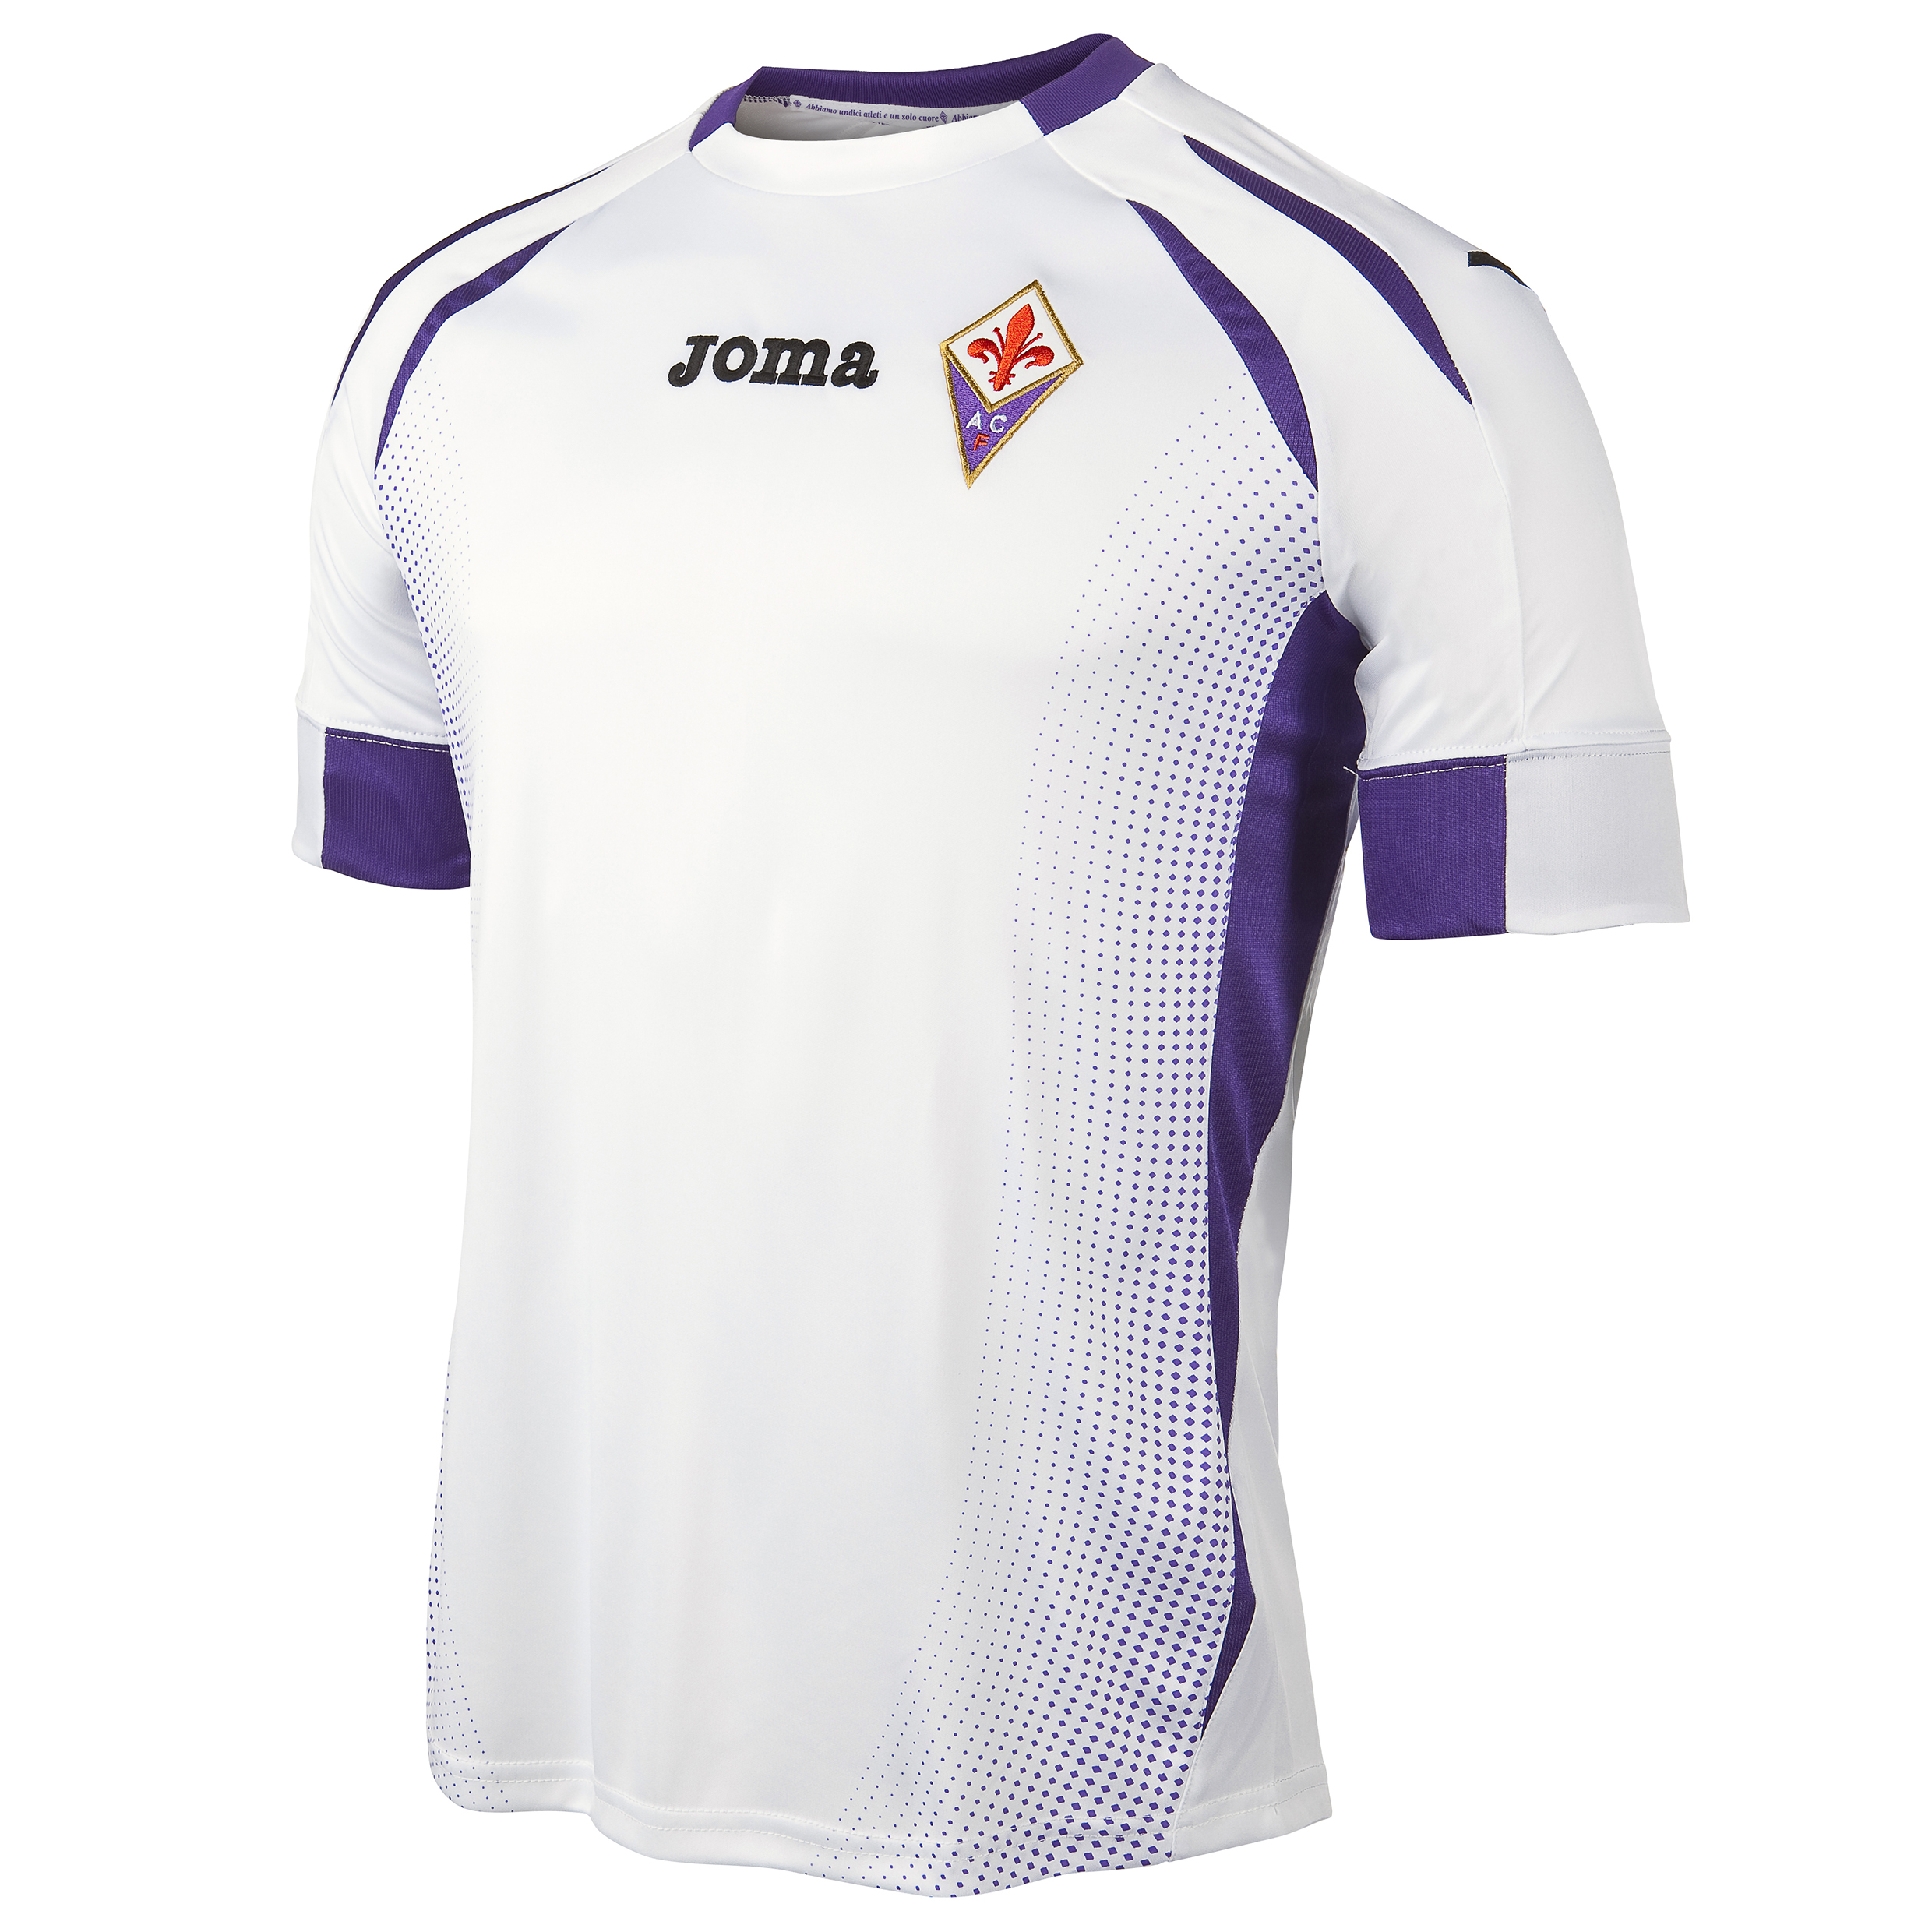 ACF Fiorentina Away Shirt 2014/15 White